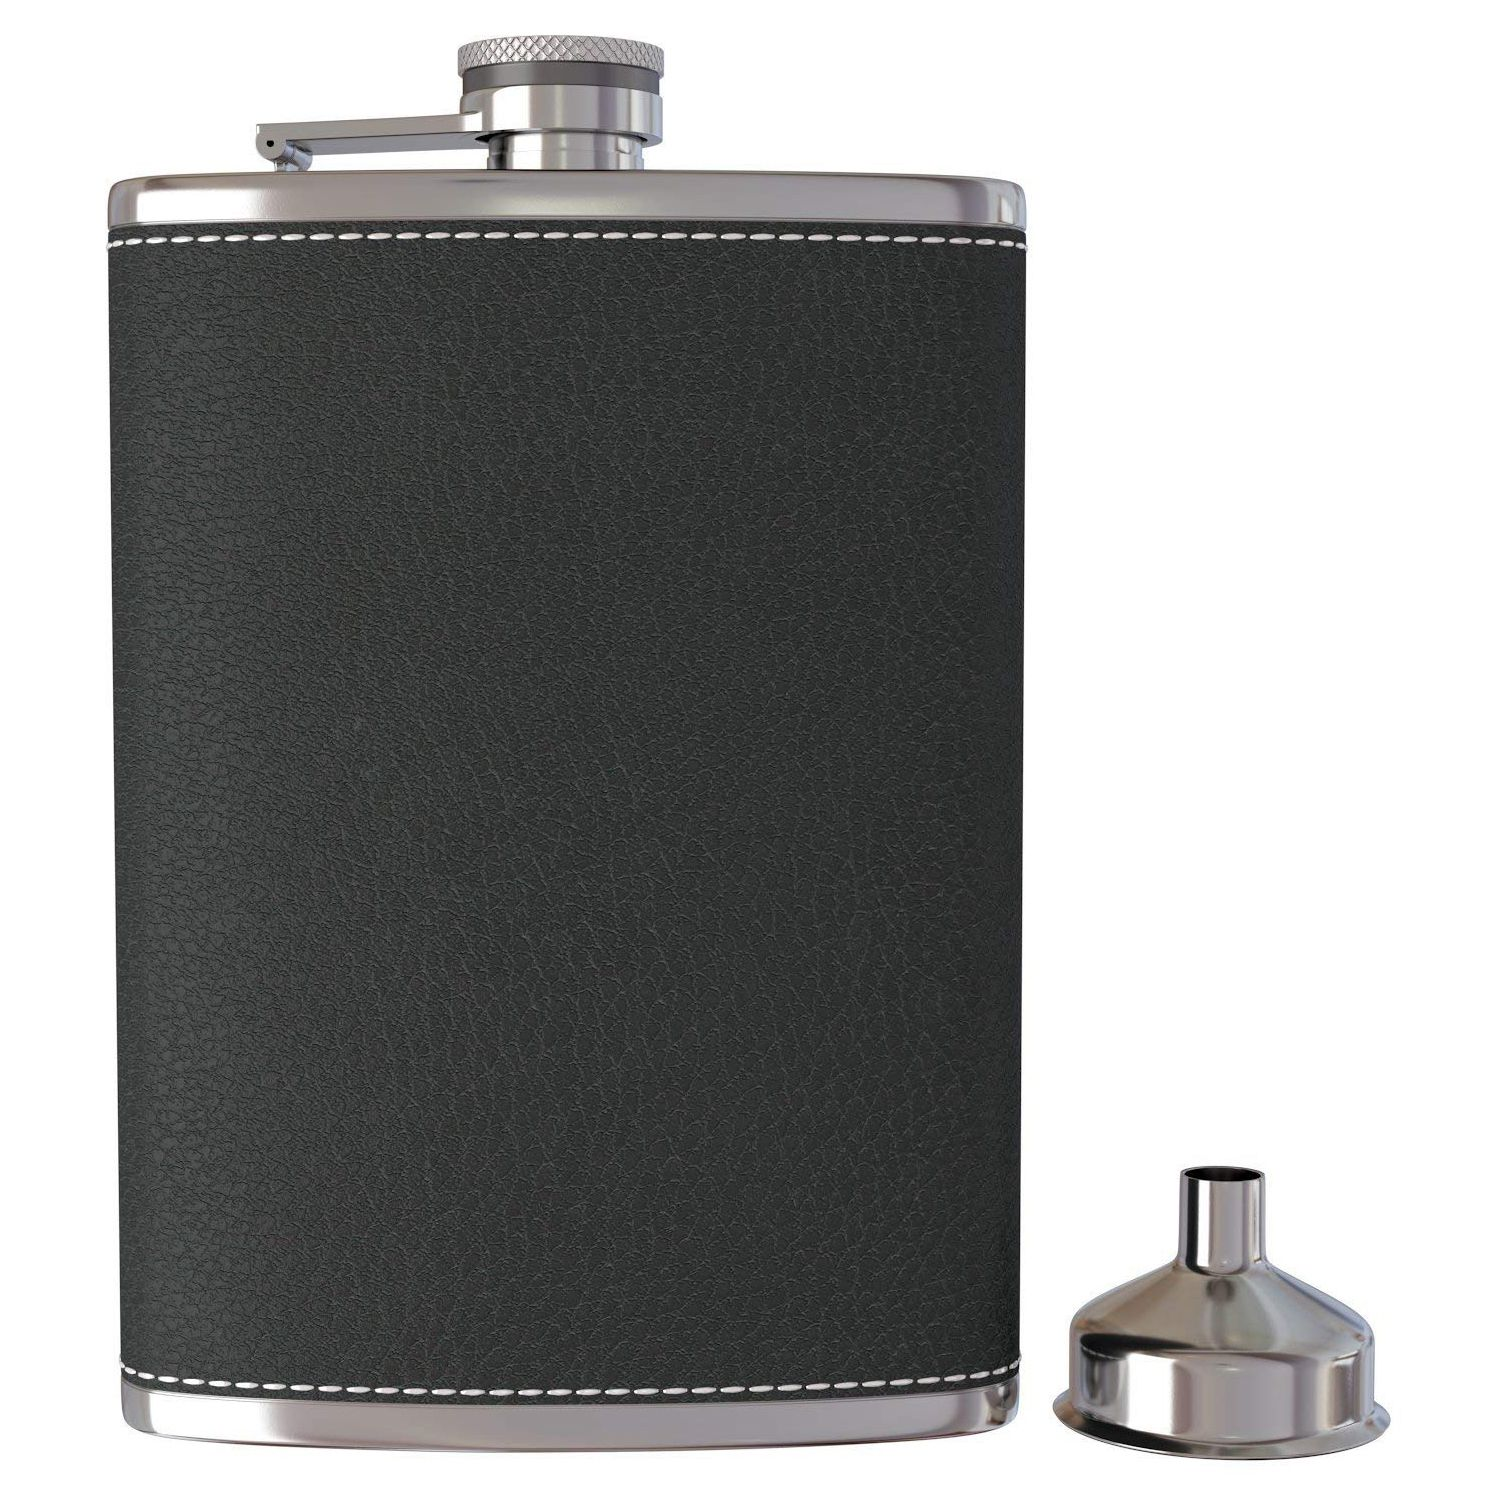 Pocket Hip Flask 8 Oz with Funnel Stainless Steel with Black Leather Wrapped Cover and Leak Proof - Fits any Suit for Discrete L